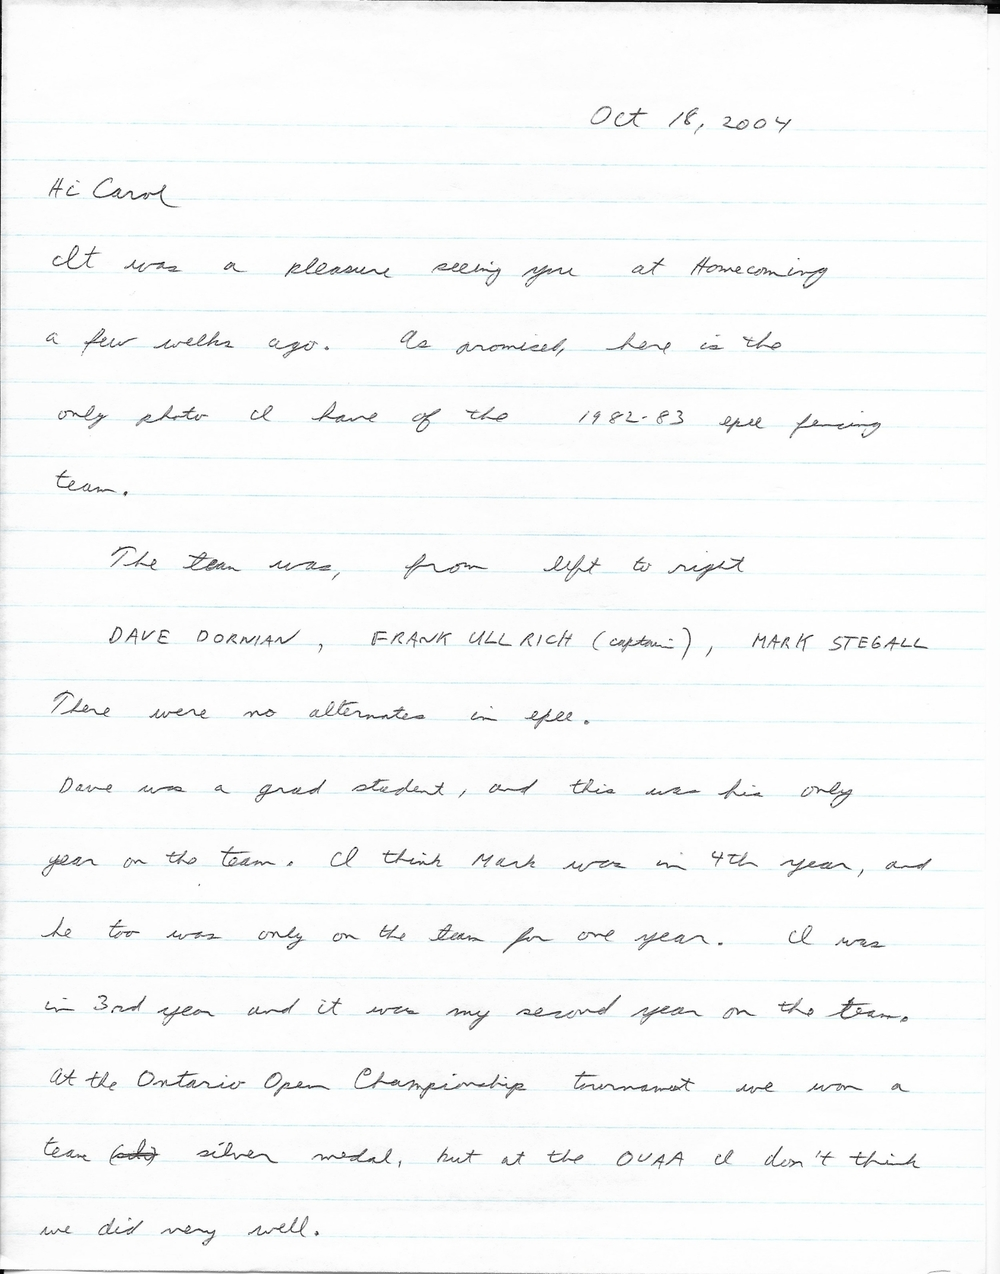 Frank Ullrich's Letter to Carol Christie